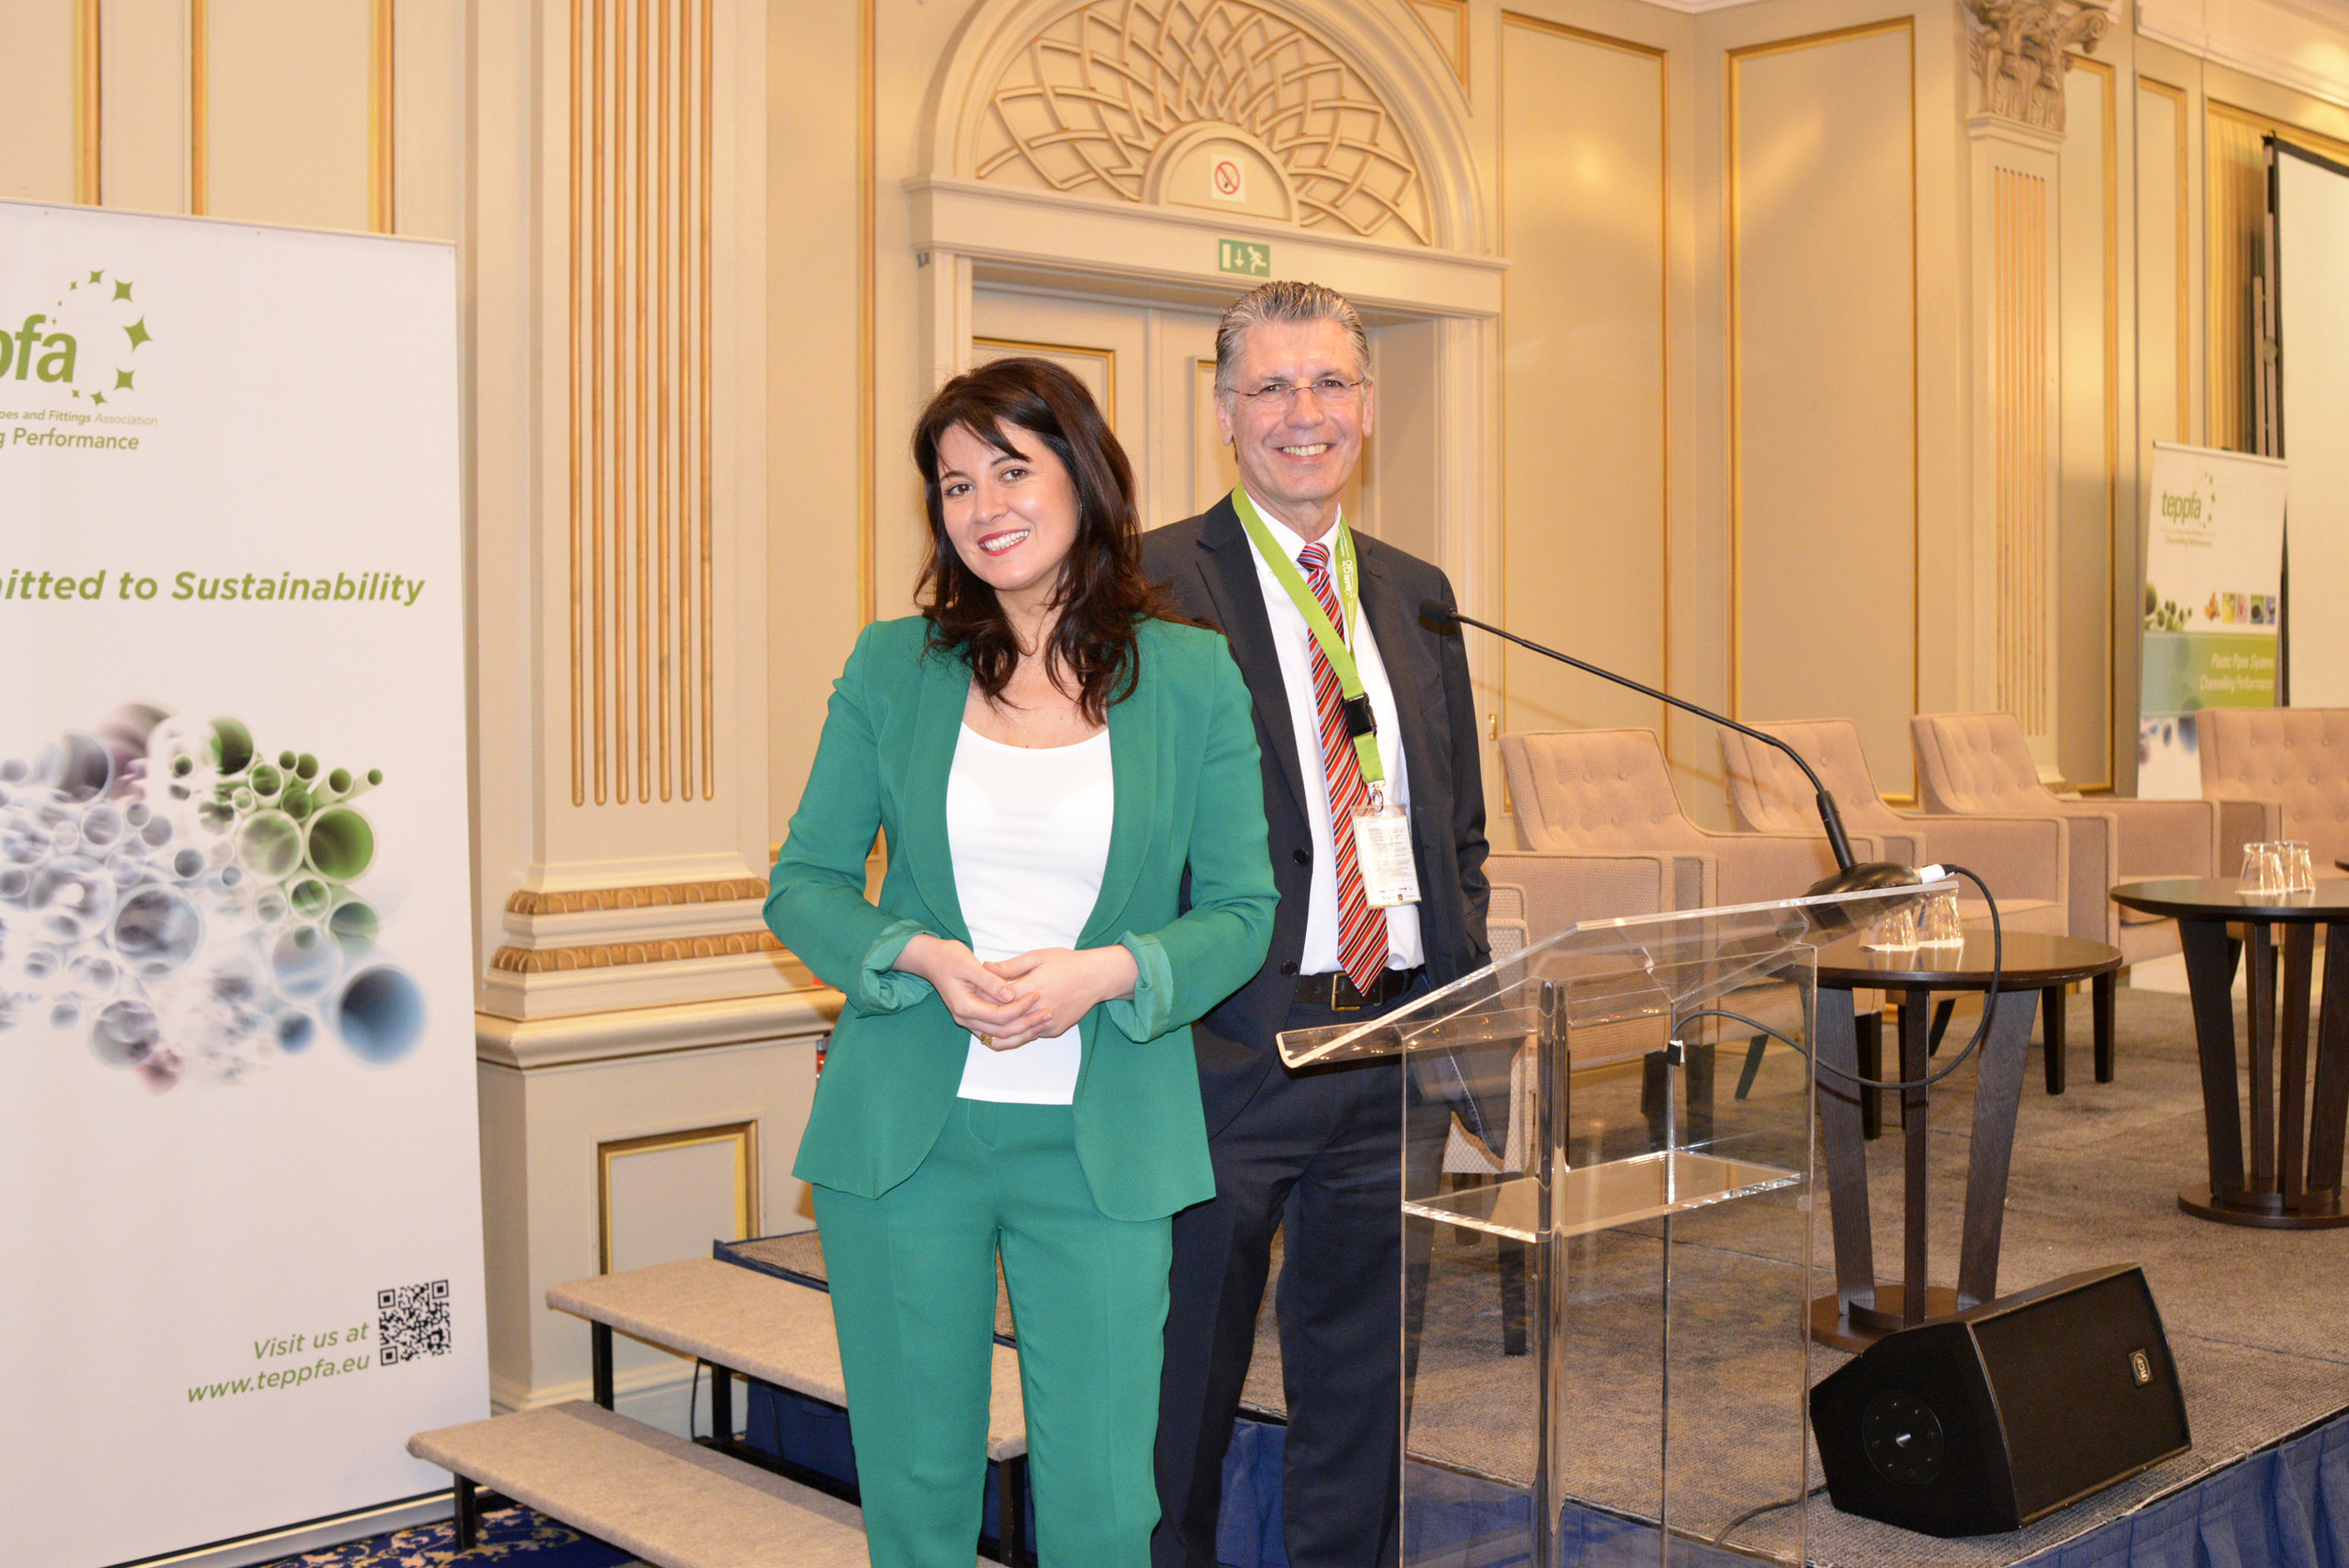 Mr. Tony Calton, TEPPFA General Manager, with Mrs. Claudia Topalli, TEPPFA Deputy General Manager.